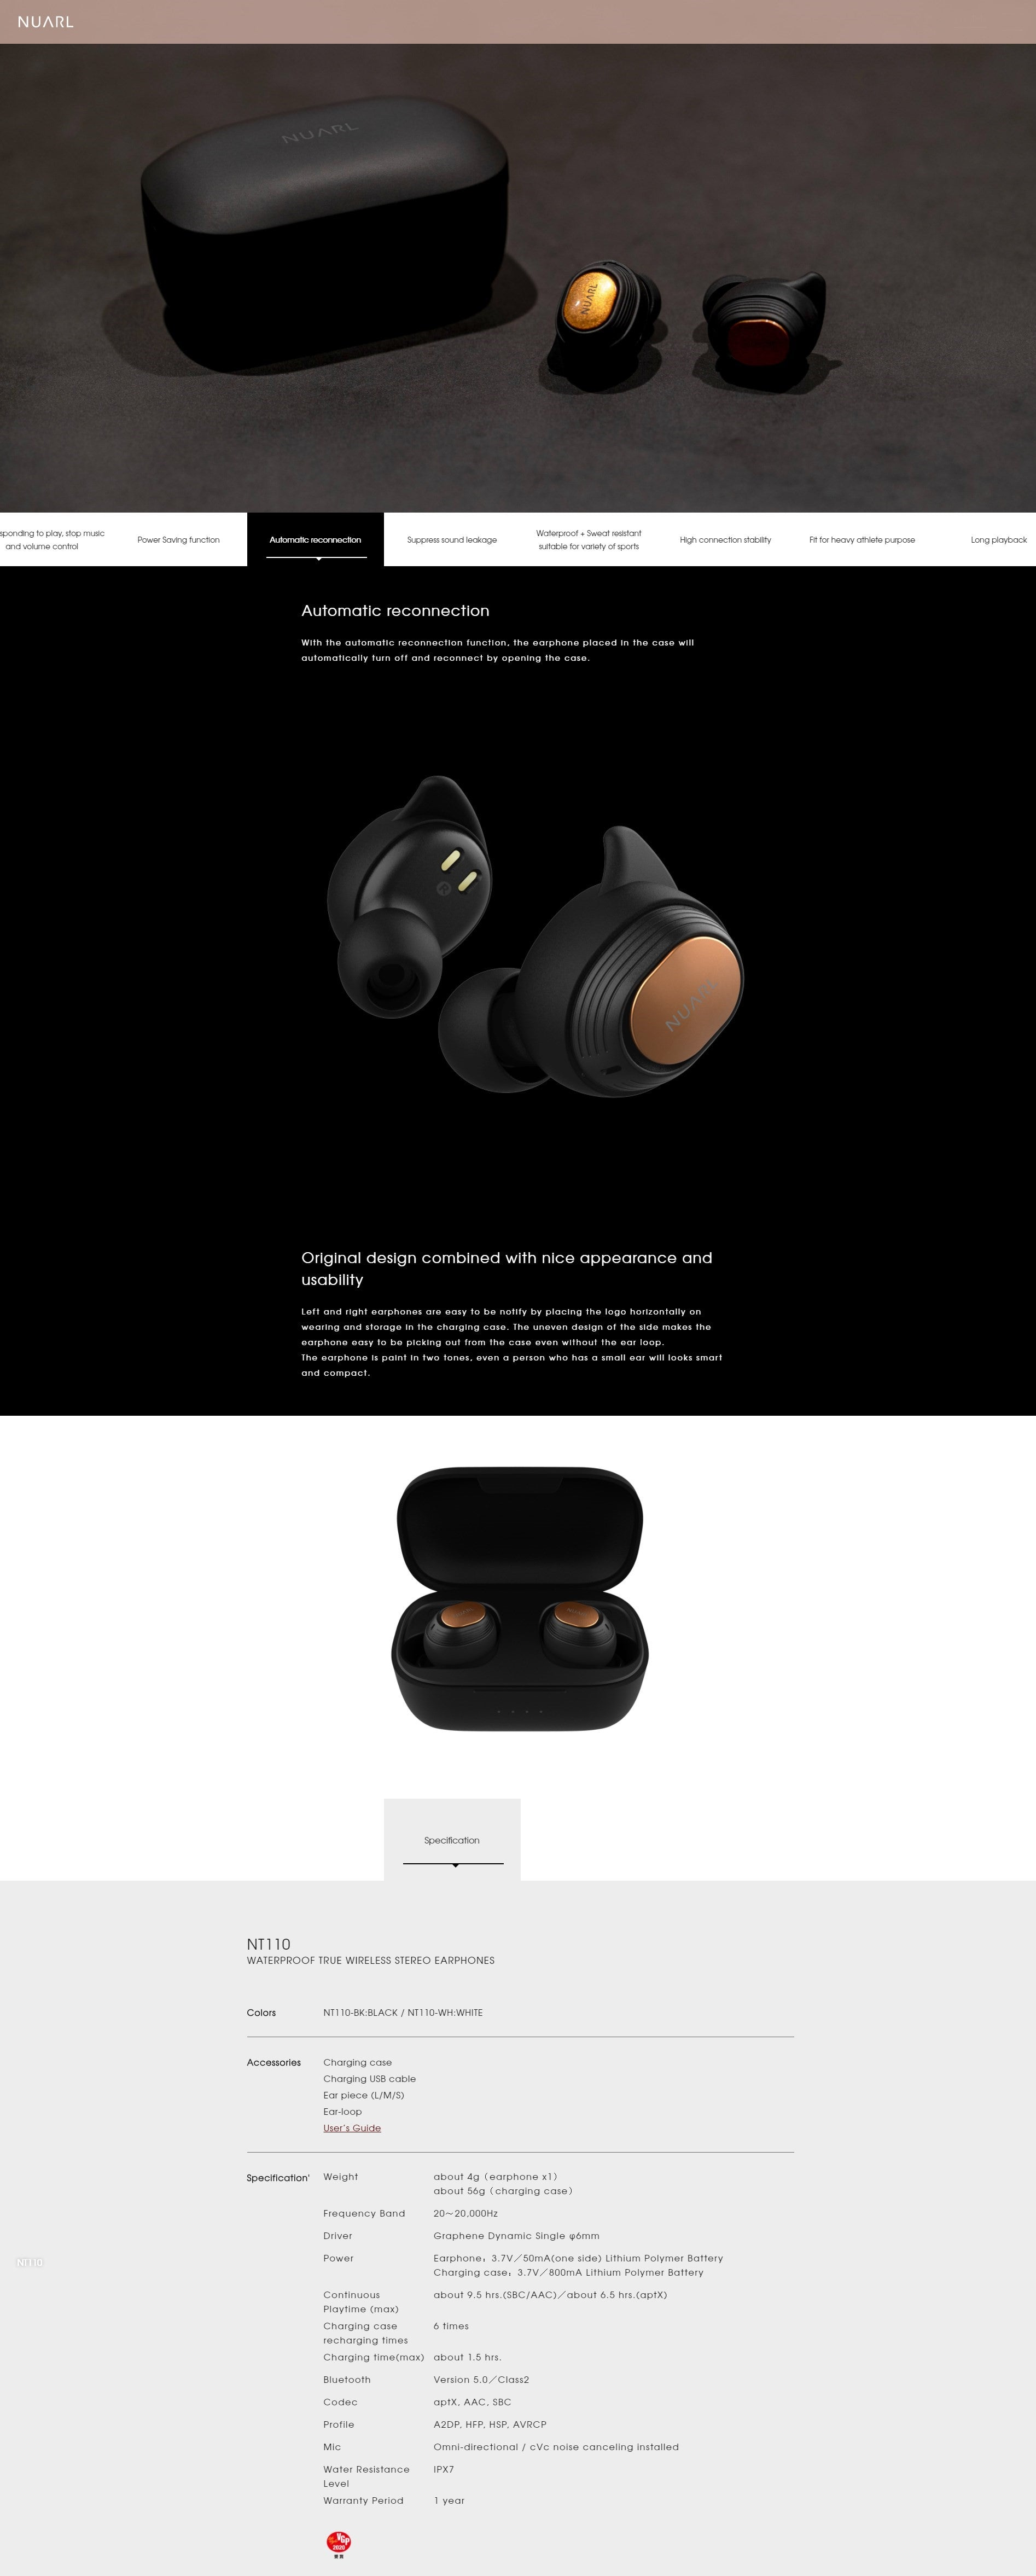 NUARL NT110 True Wireless Earbuds Main Features